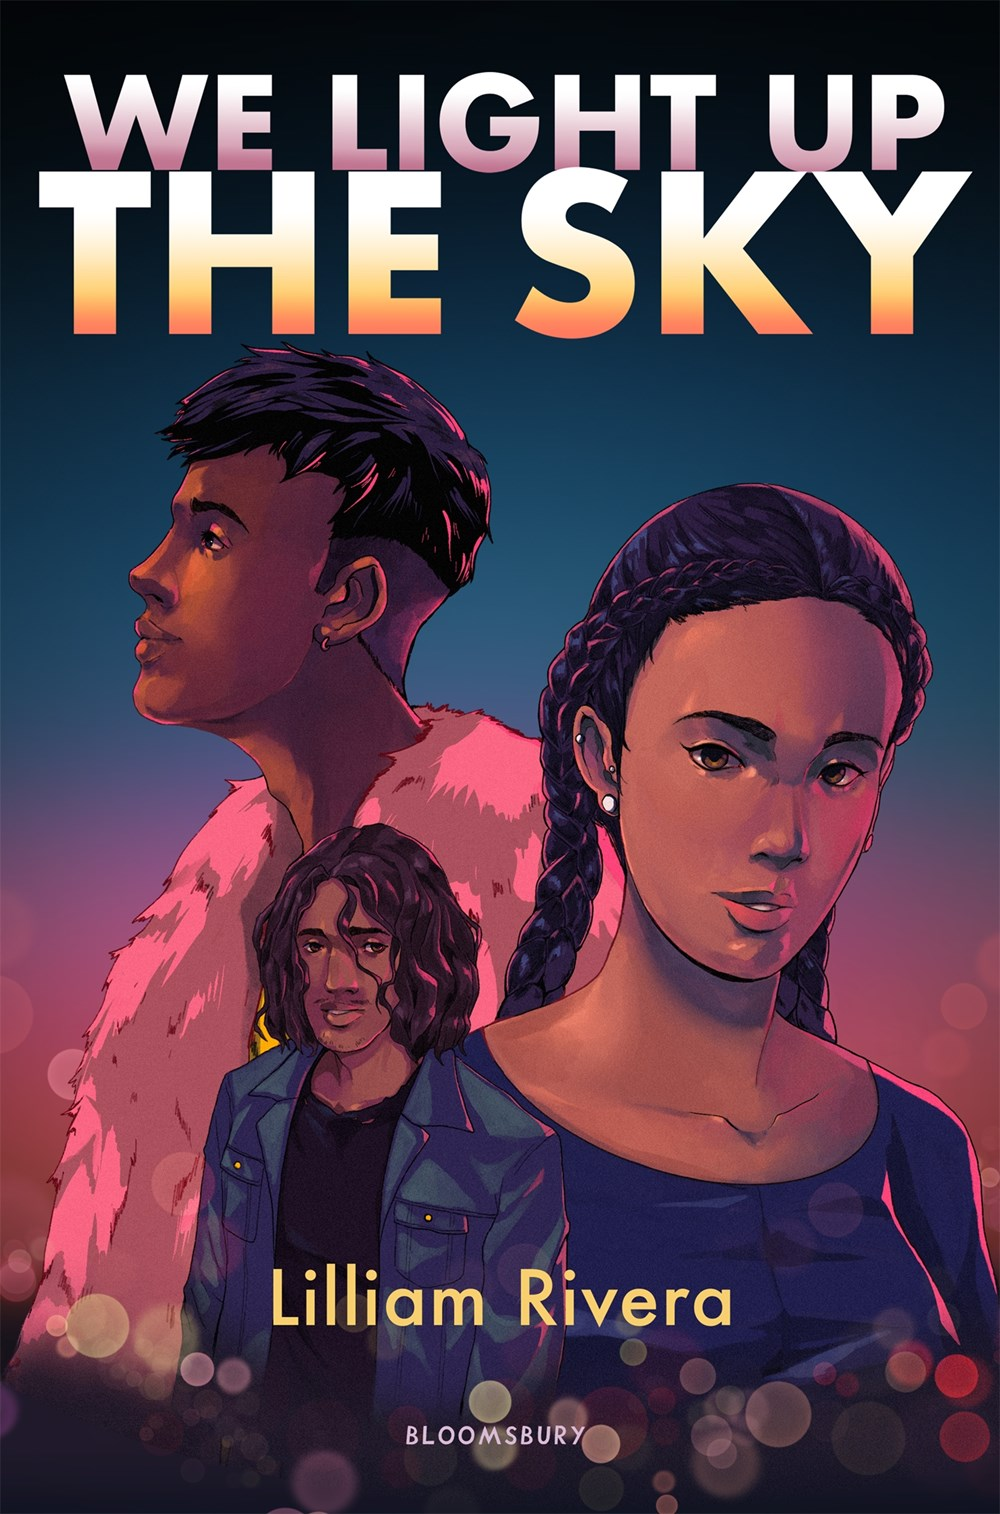 Three young people are featured on this book cover